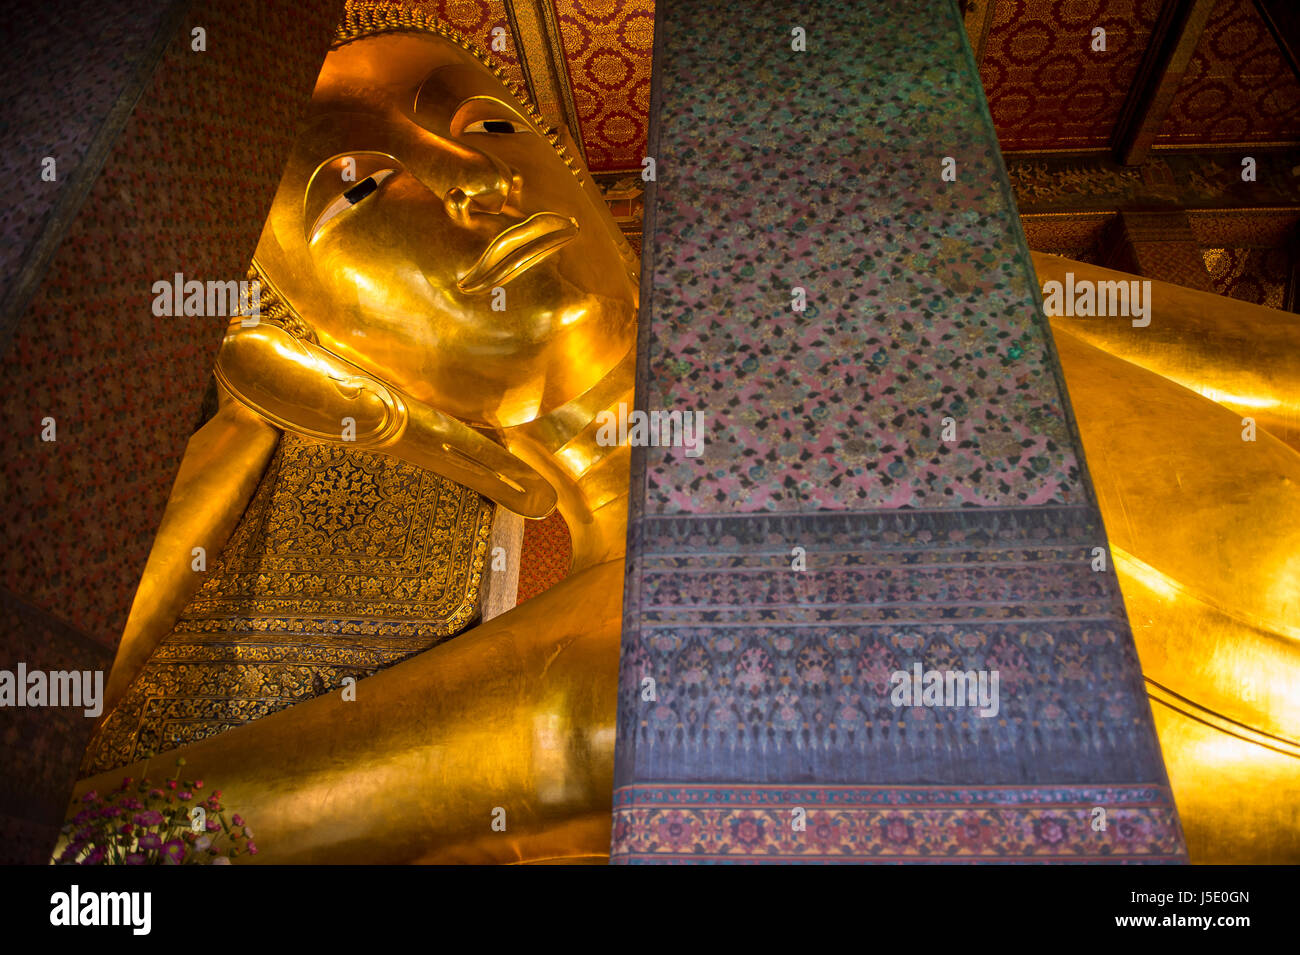 Close-up of the giant golden statue at the Temple of the Reclining Buddha in Bangkok, Thailand - Stock Image